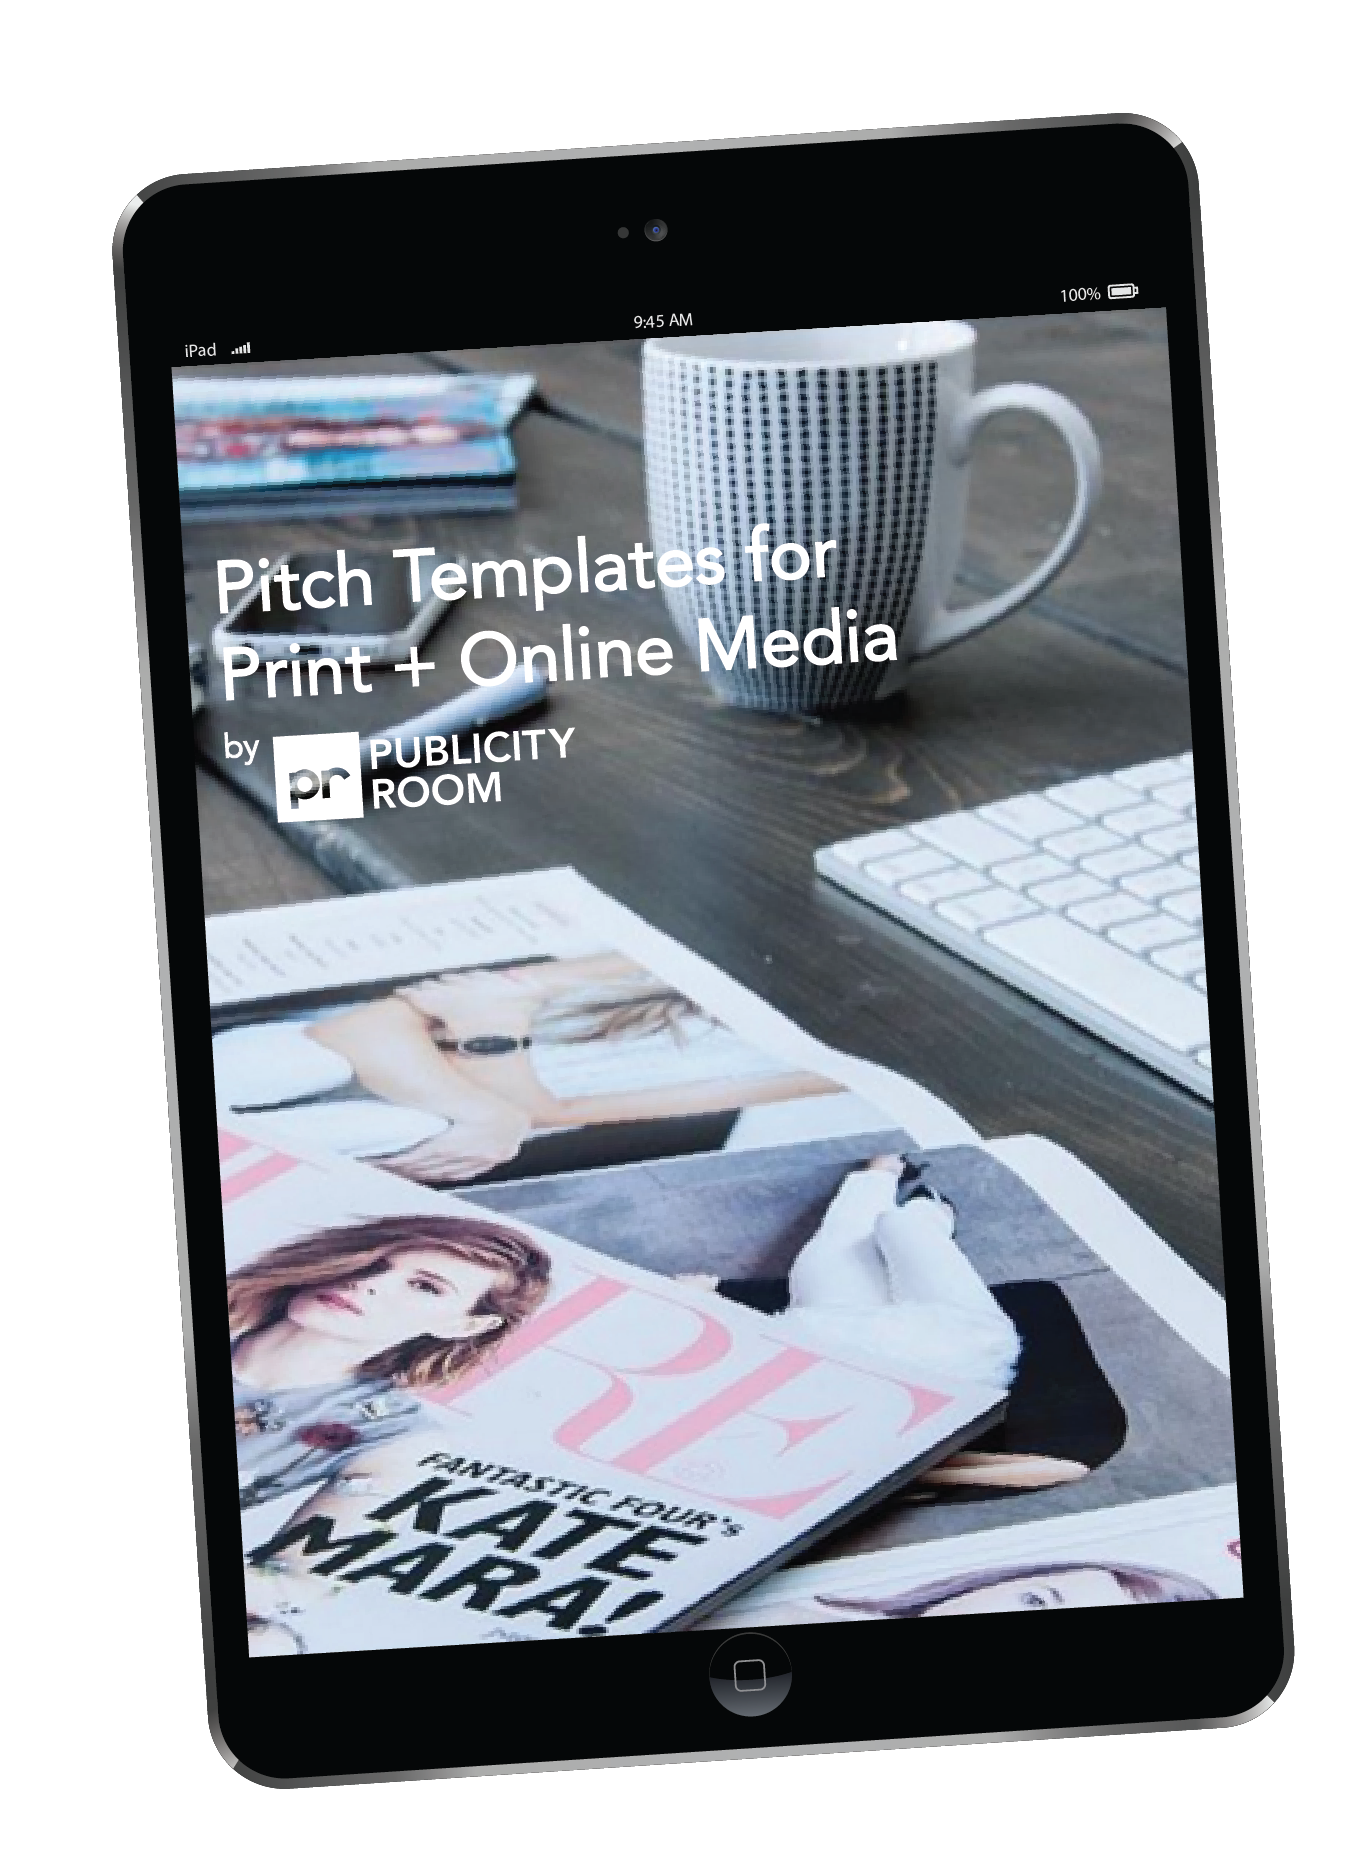 Pitch Templates For Print Online Media Publicity Room